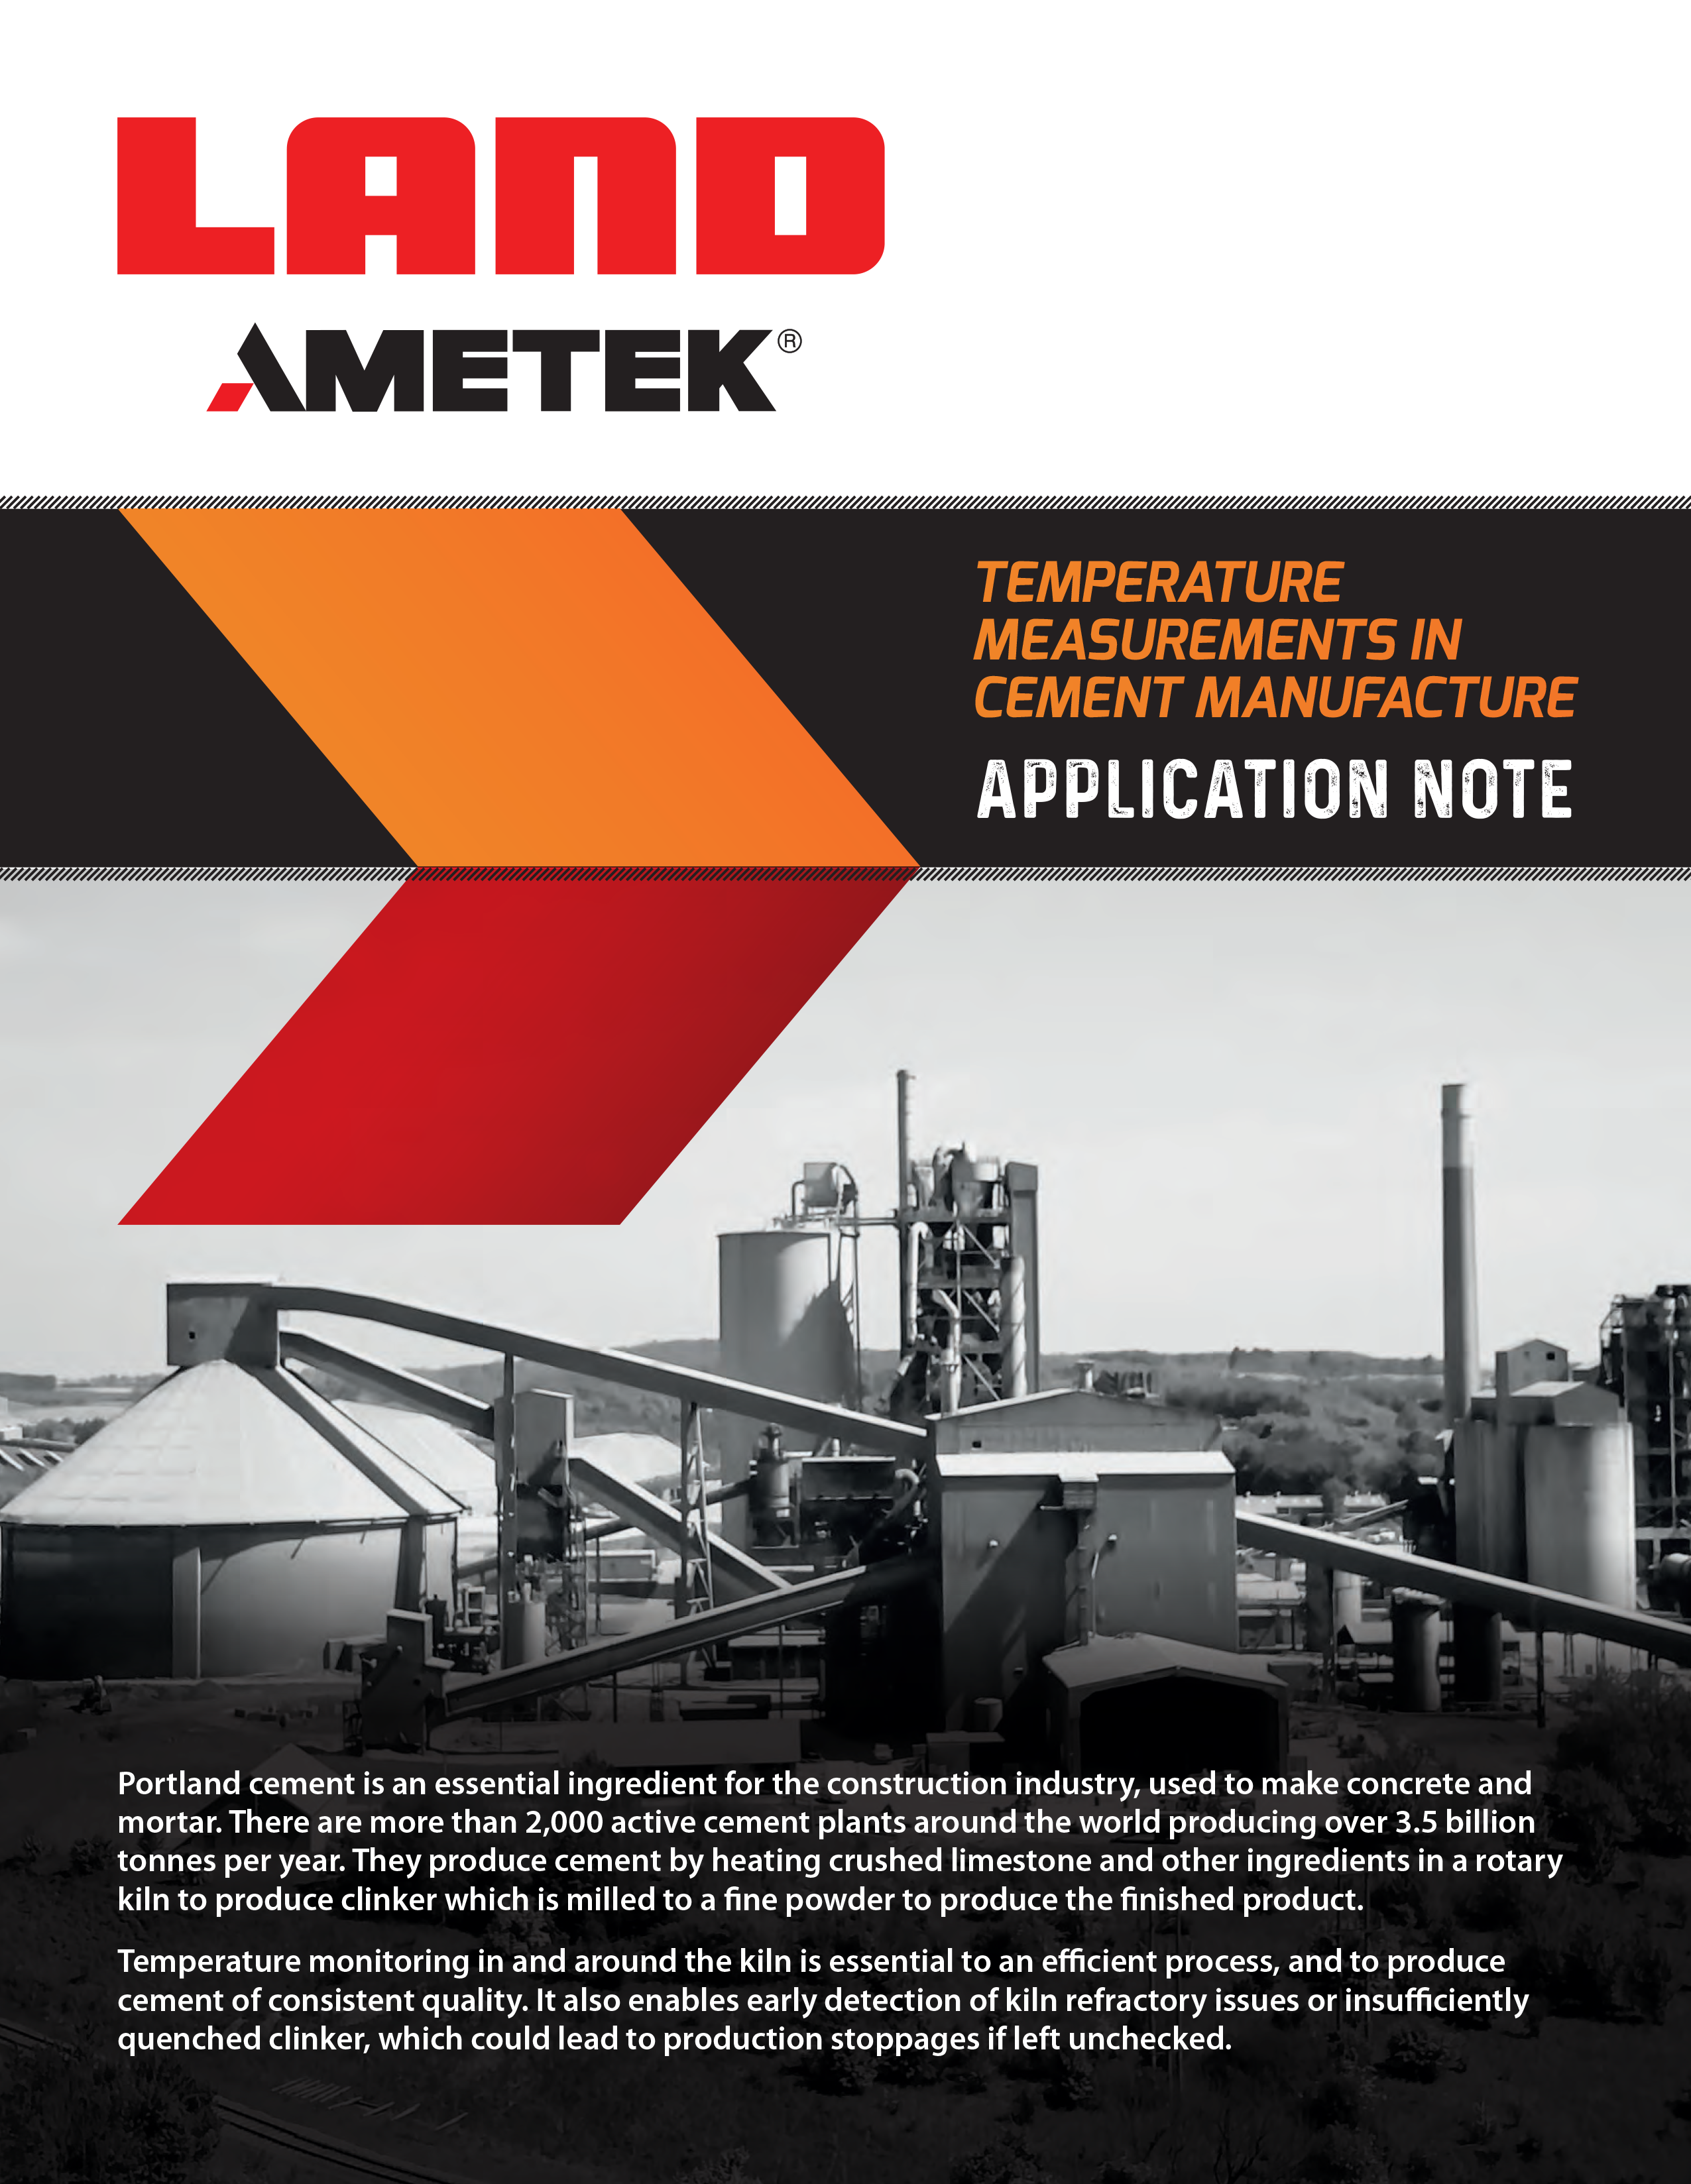 Application Note - TEMPERATURE MEASUREMENTS IN CEMENT MANUFACTURE